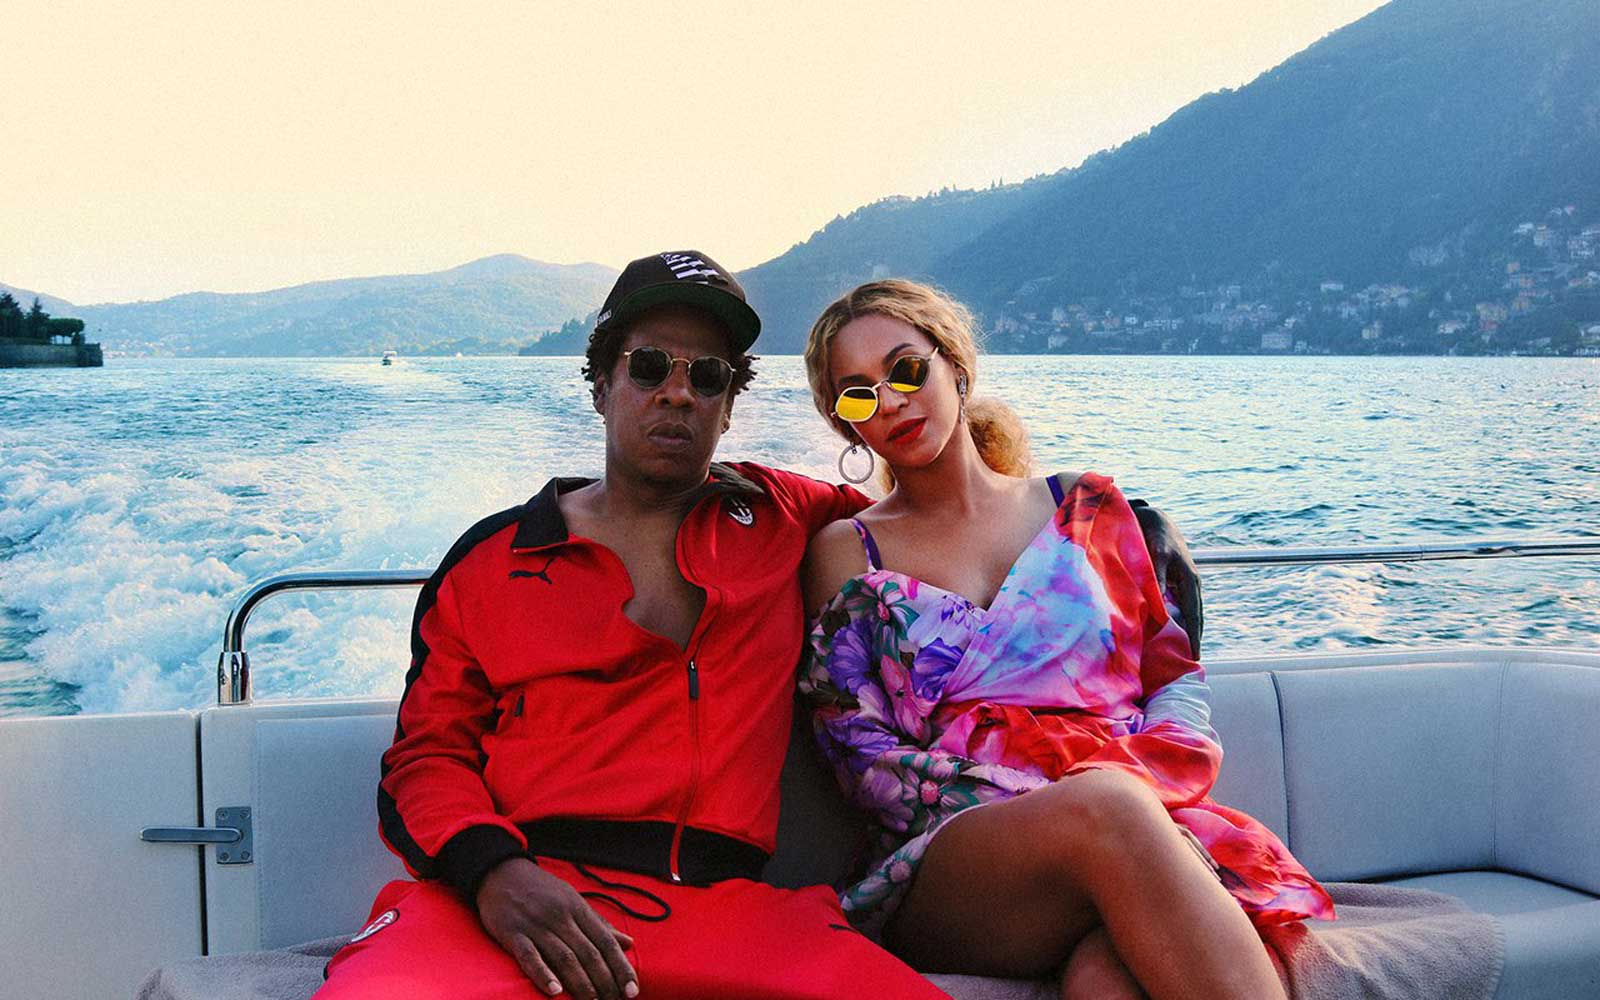 Beyoncé and Jay-Z Just Shared Rare Vacation Photos With Their Adorable Twins